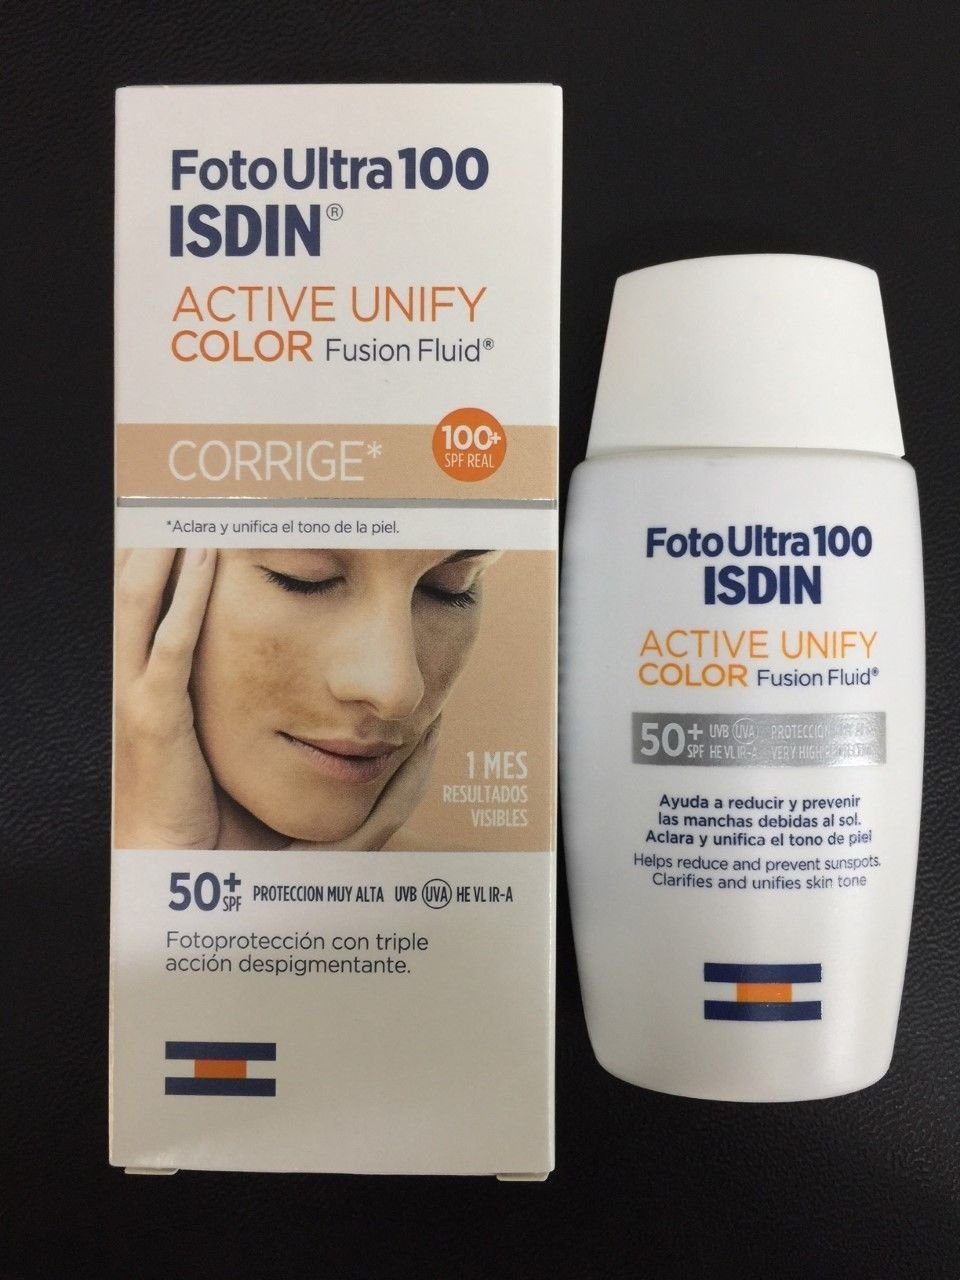 FOTO ULTRA ISDIN FUSION FLUID COLOR SPF 100 + 50 ml ACTIVE UNIFY fotoultra